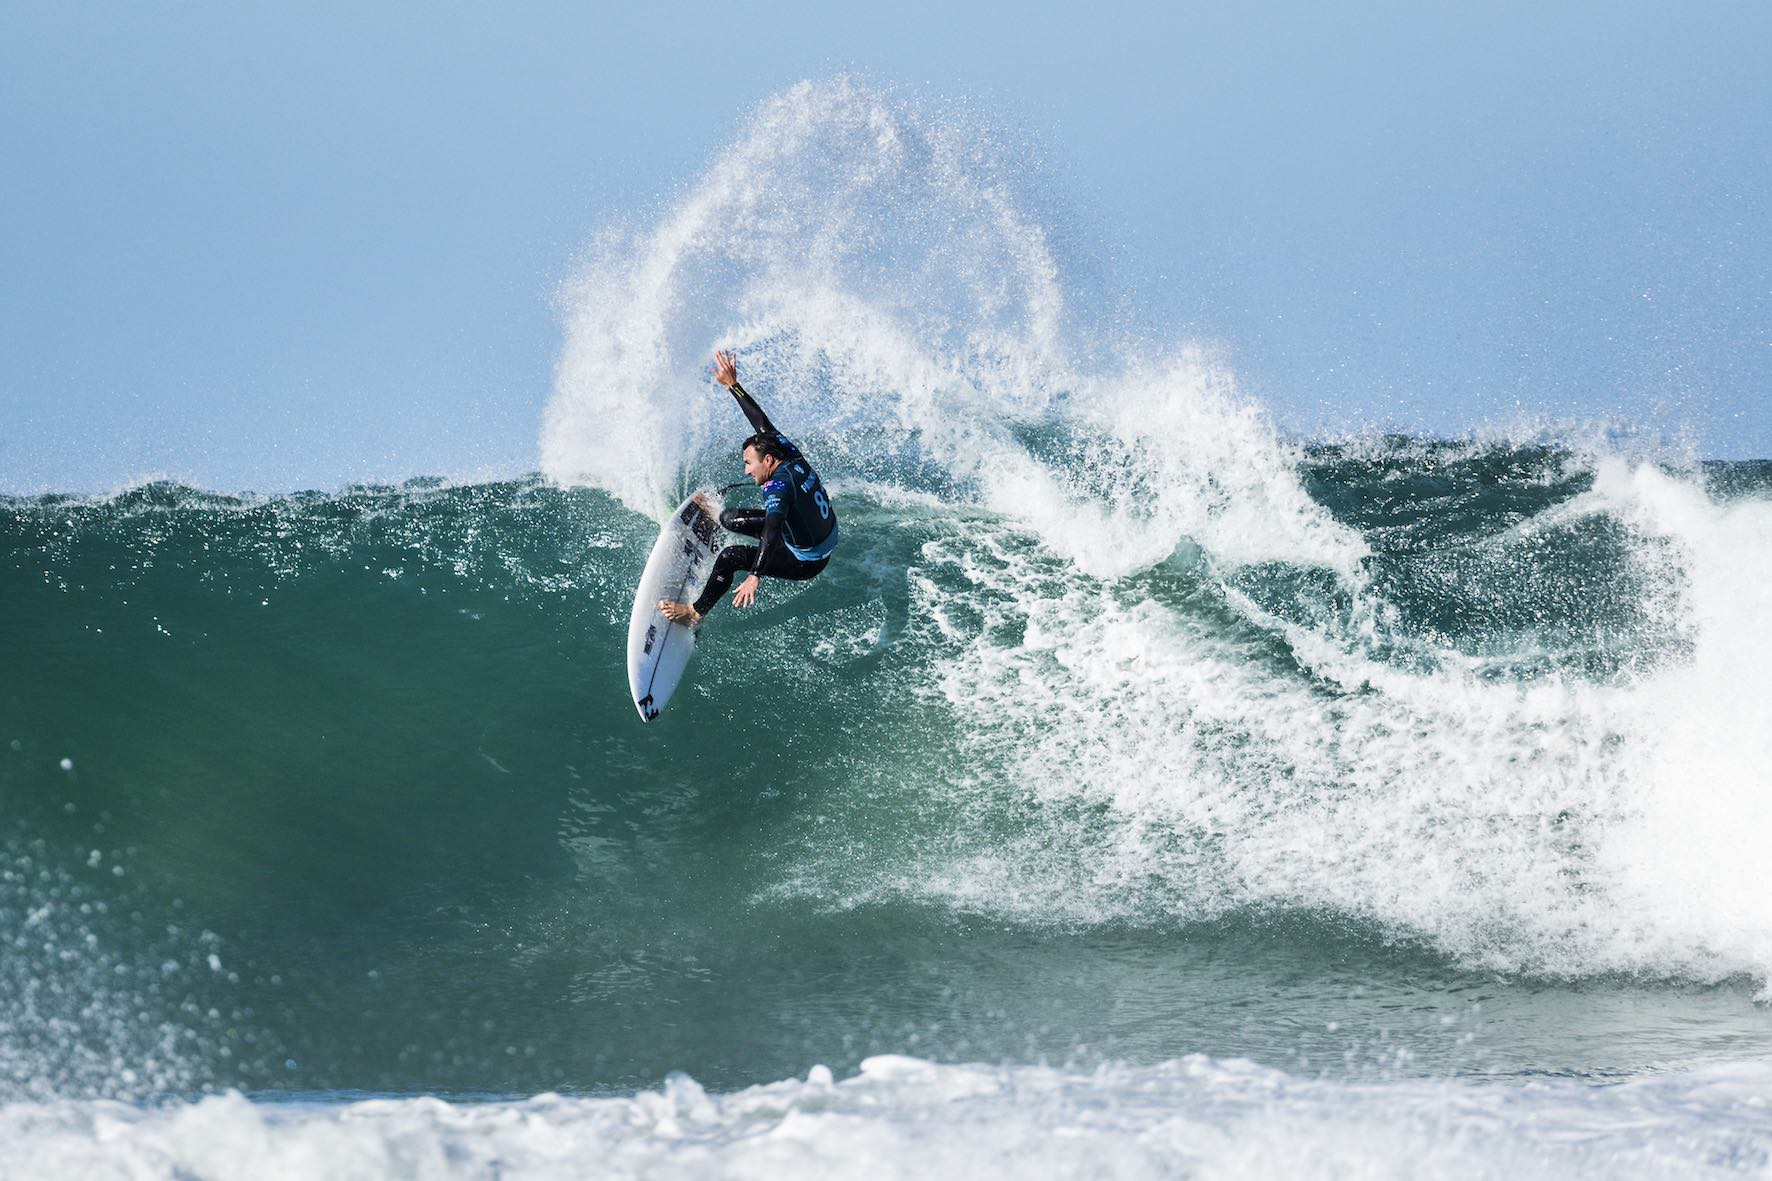 Joel Parkinson surfing in the 2018 Corona Open J-Bay